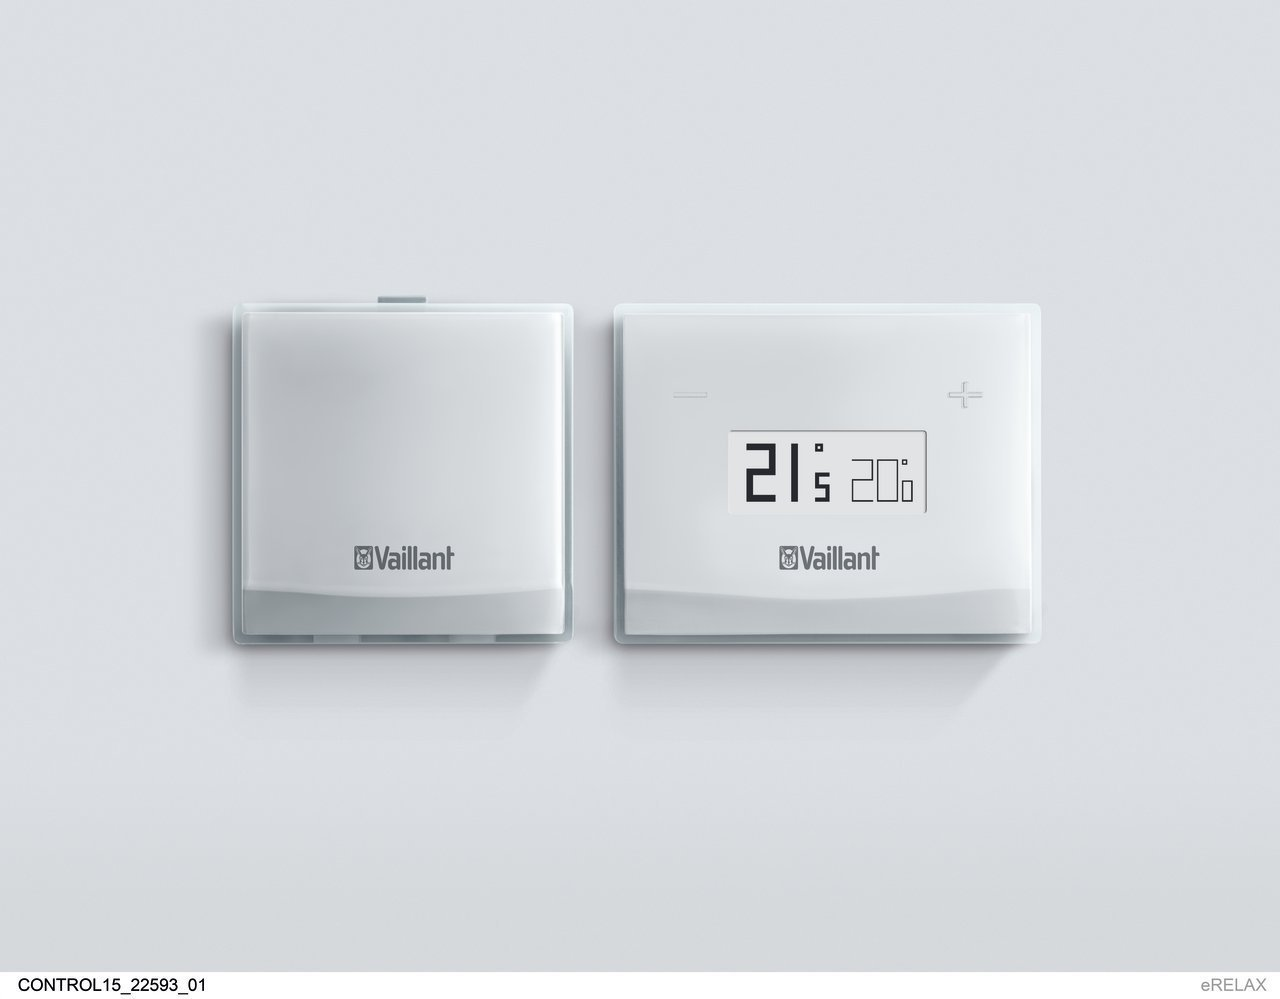 Slimme Thermostaat Wifi Vaillant Vsmart Slimme Thermostaat